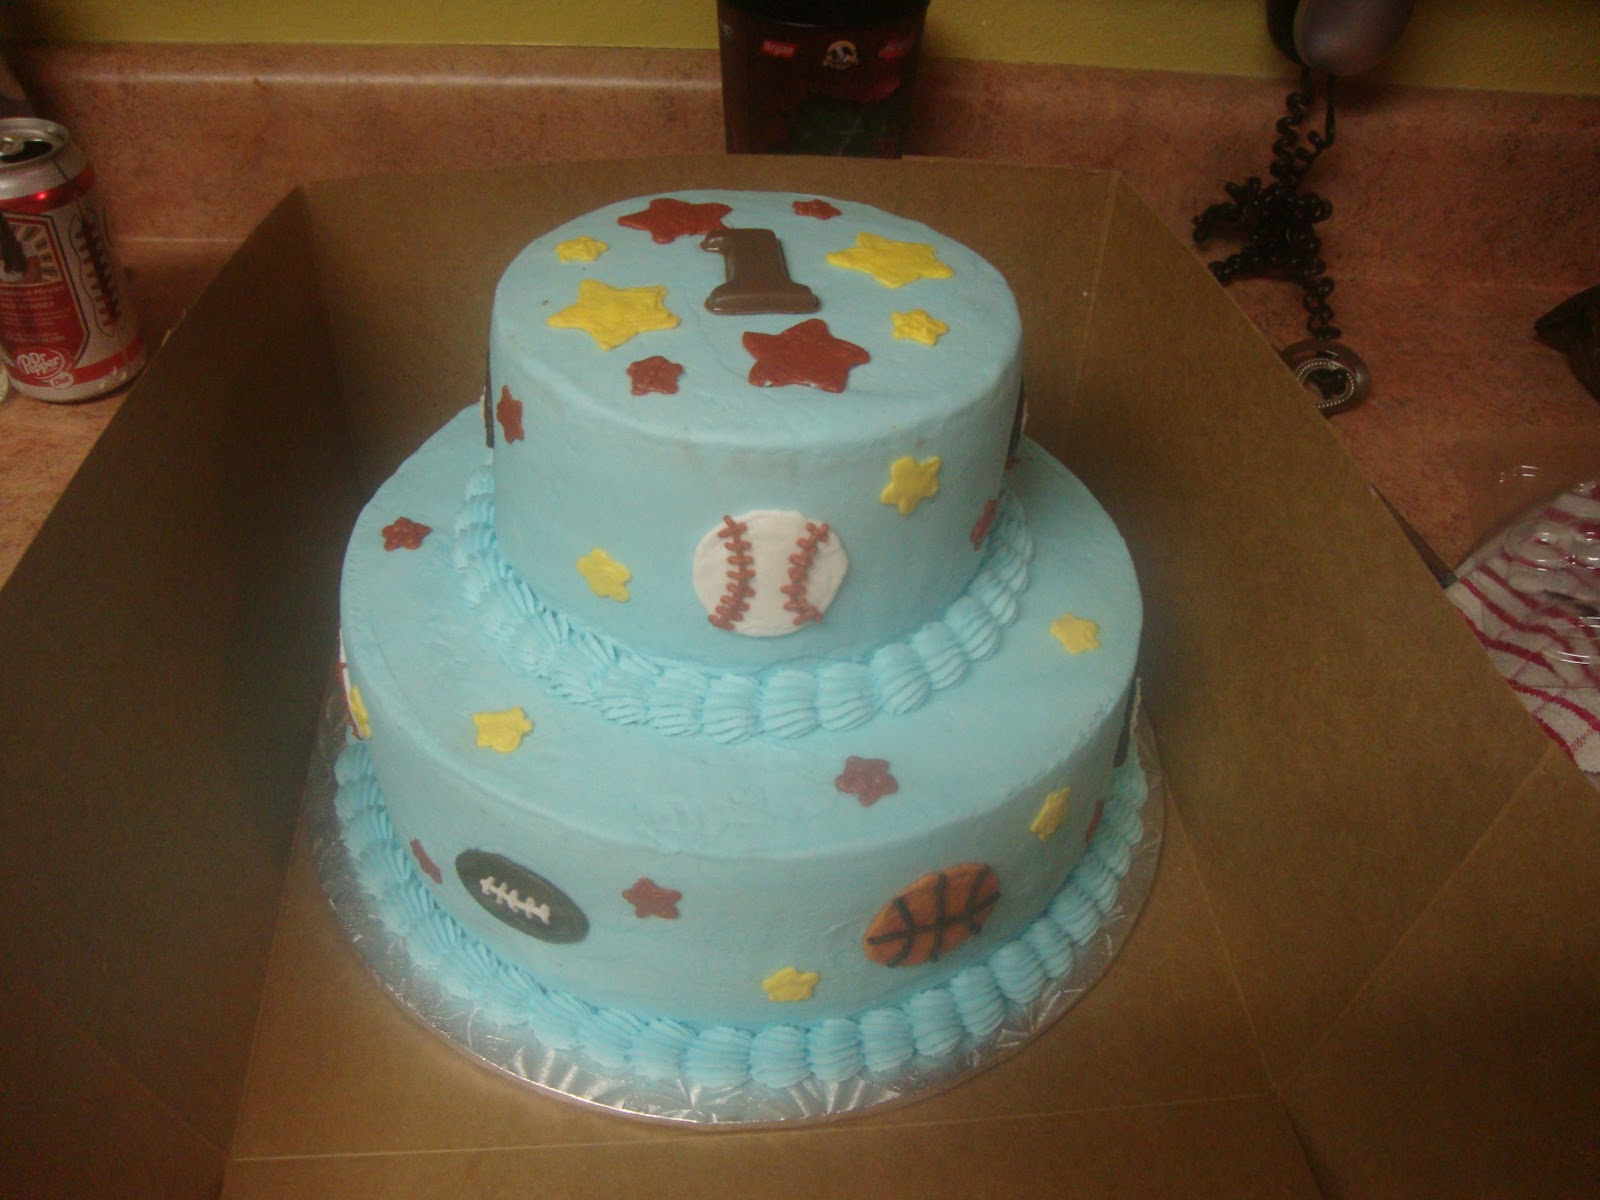 Charity's Sunshine Sweets: BABY BOY'S 1ST BIRTHDAY CAKE